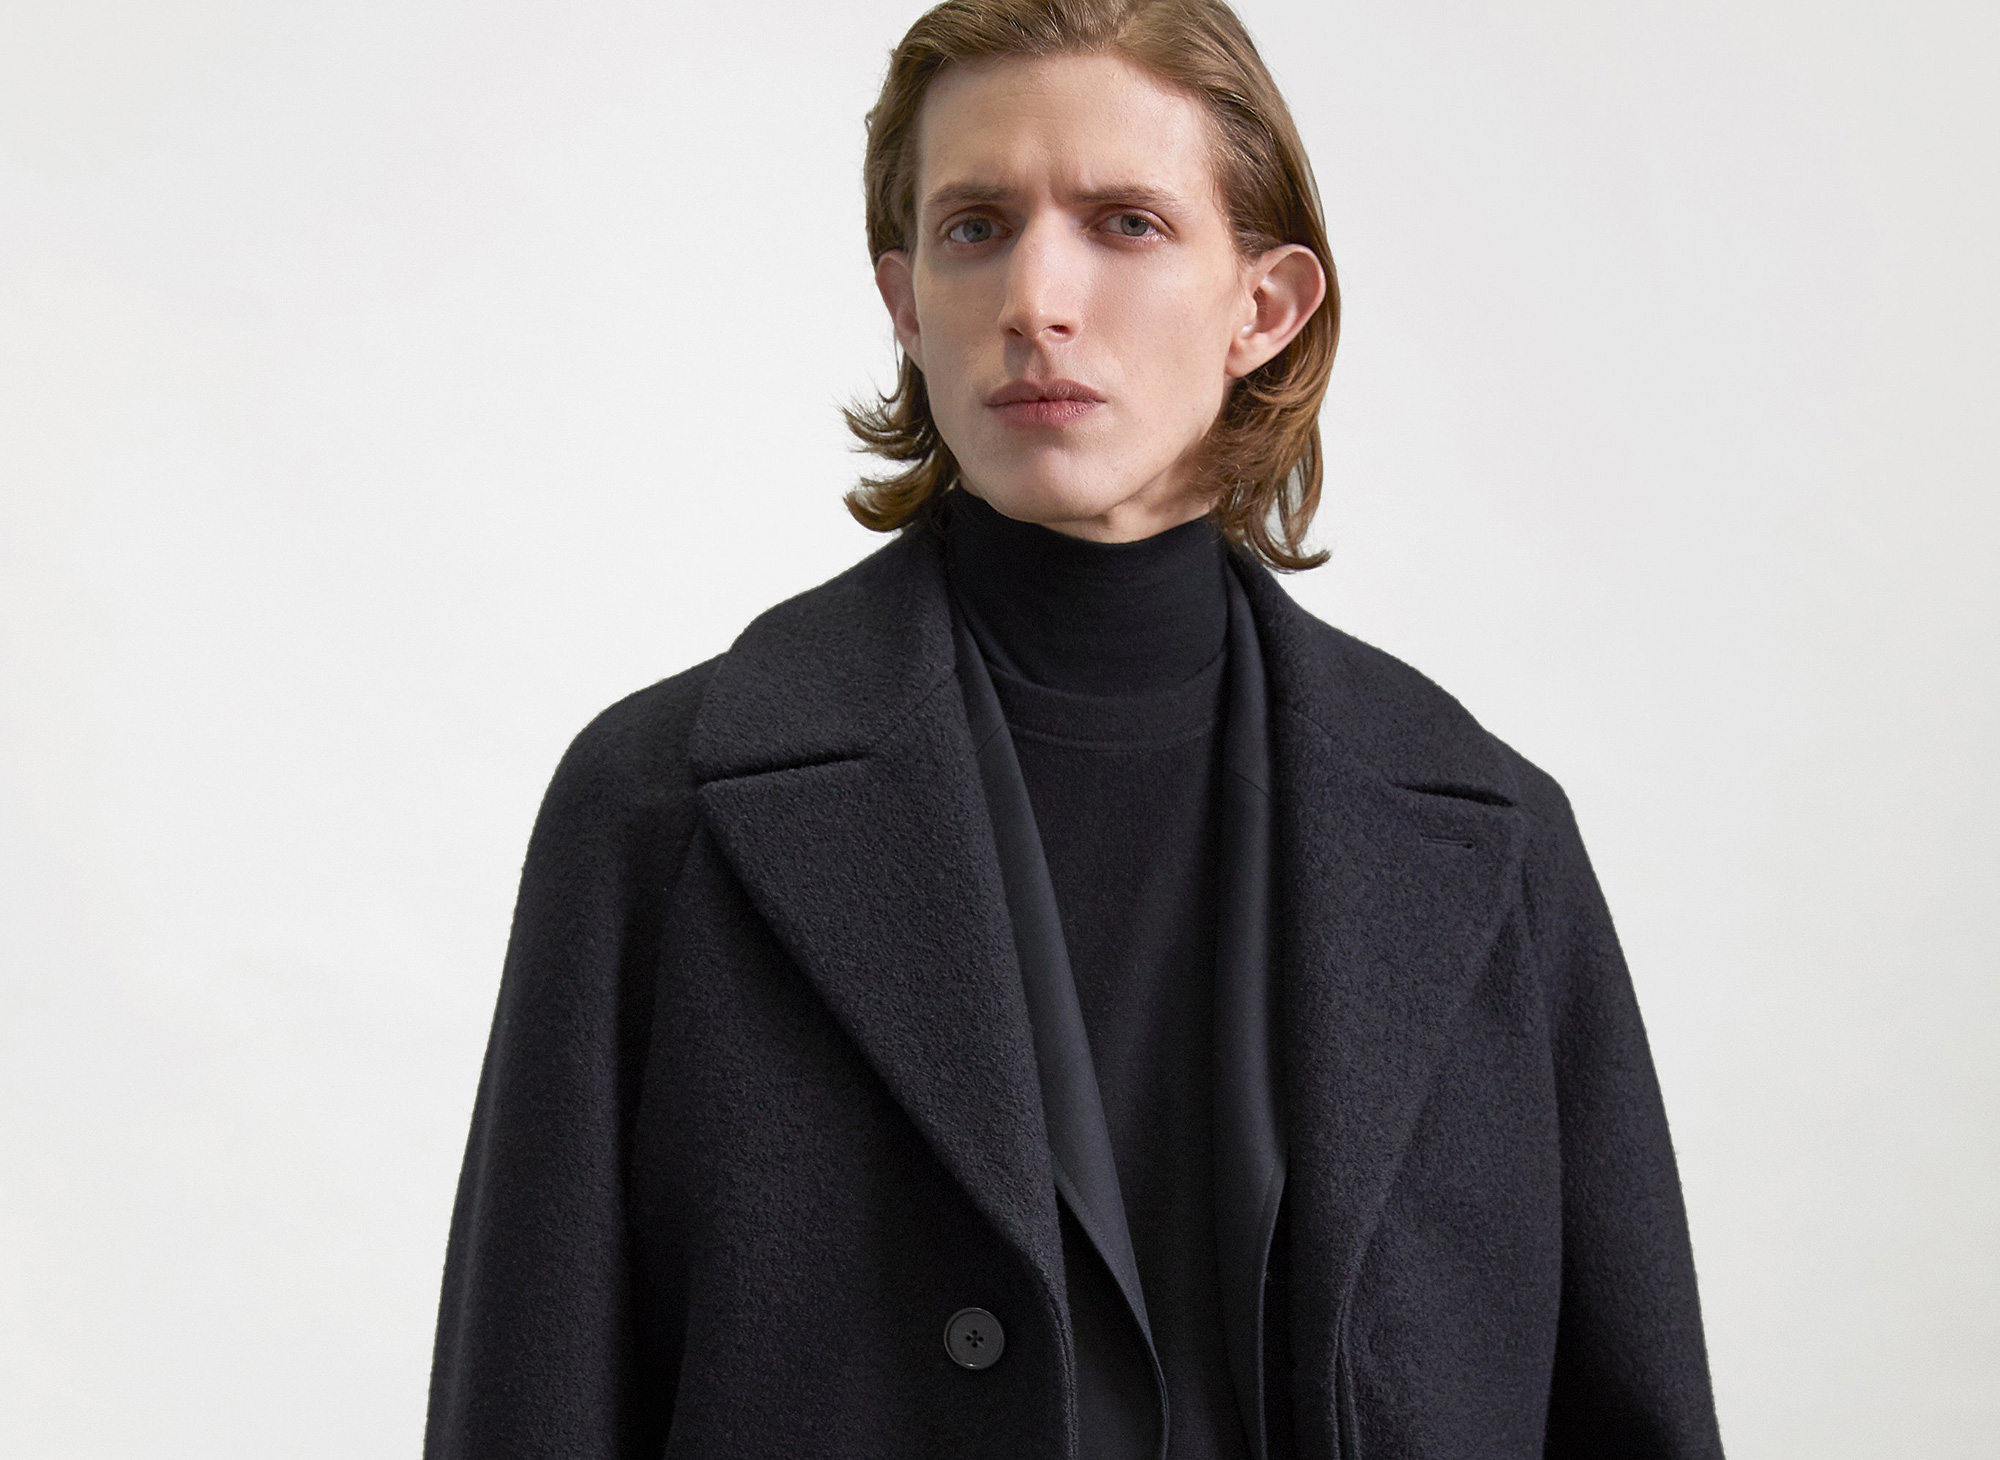 THEORY MENSWEAR – FALL 2019